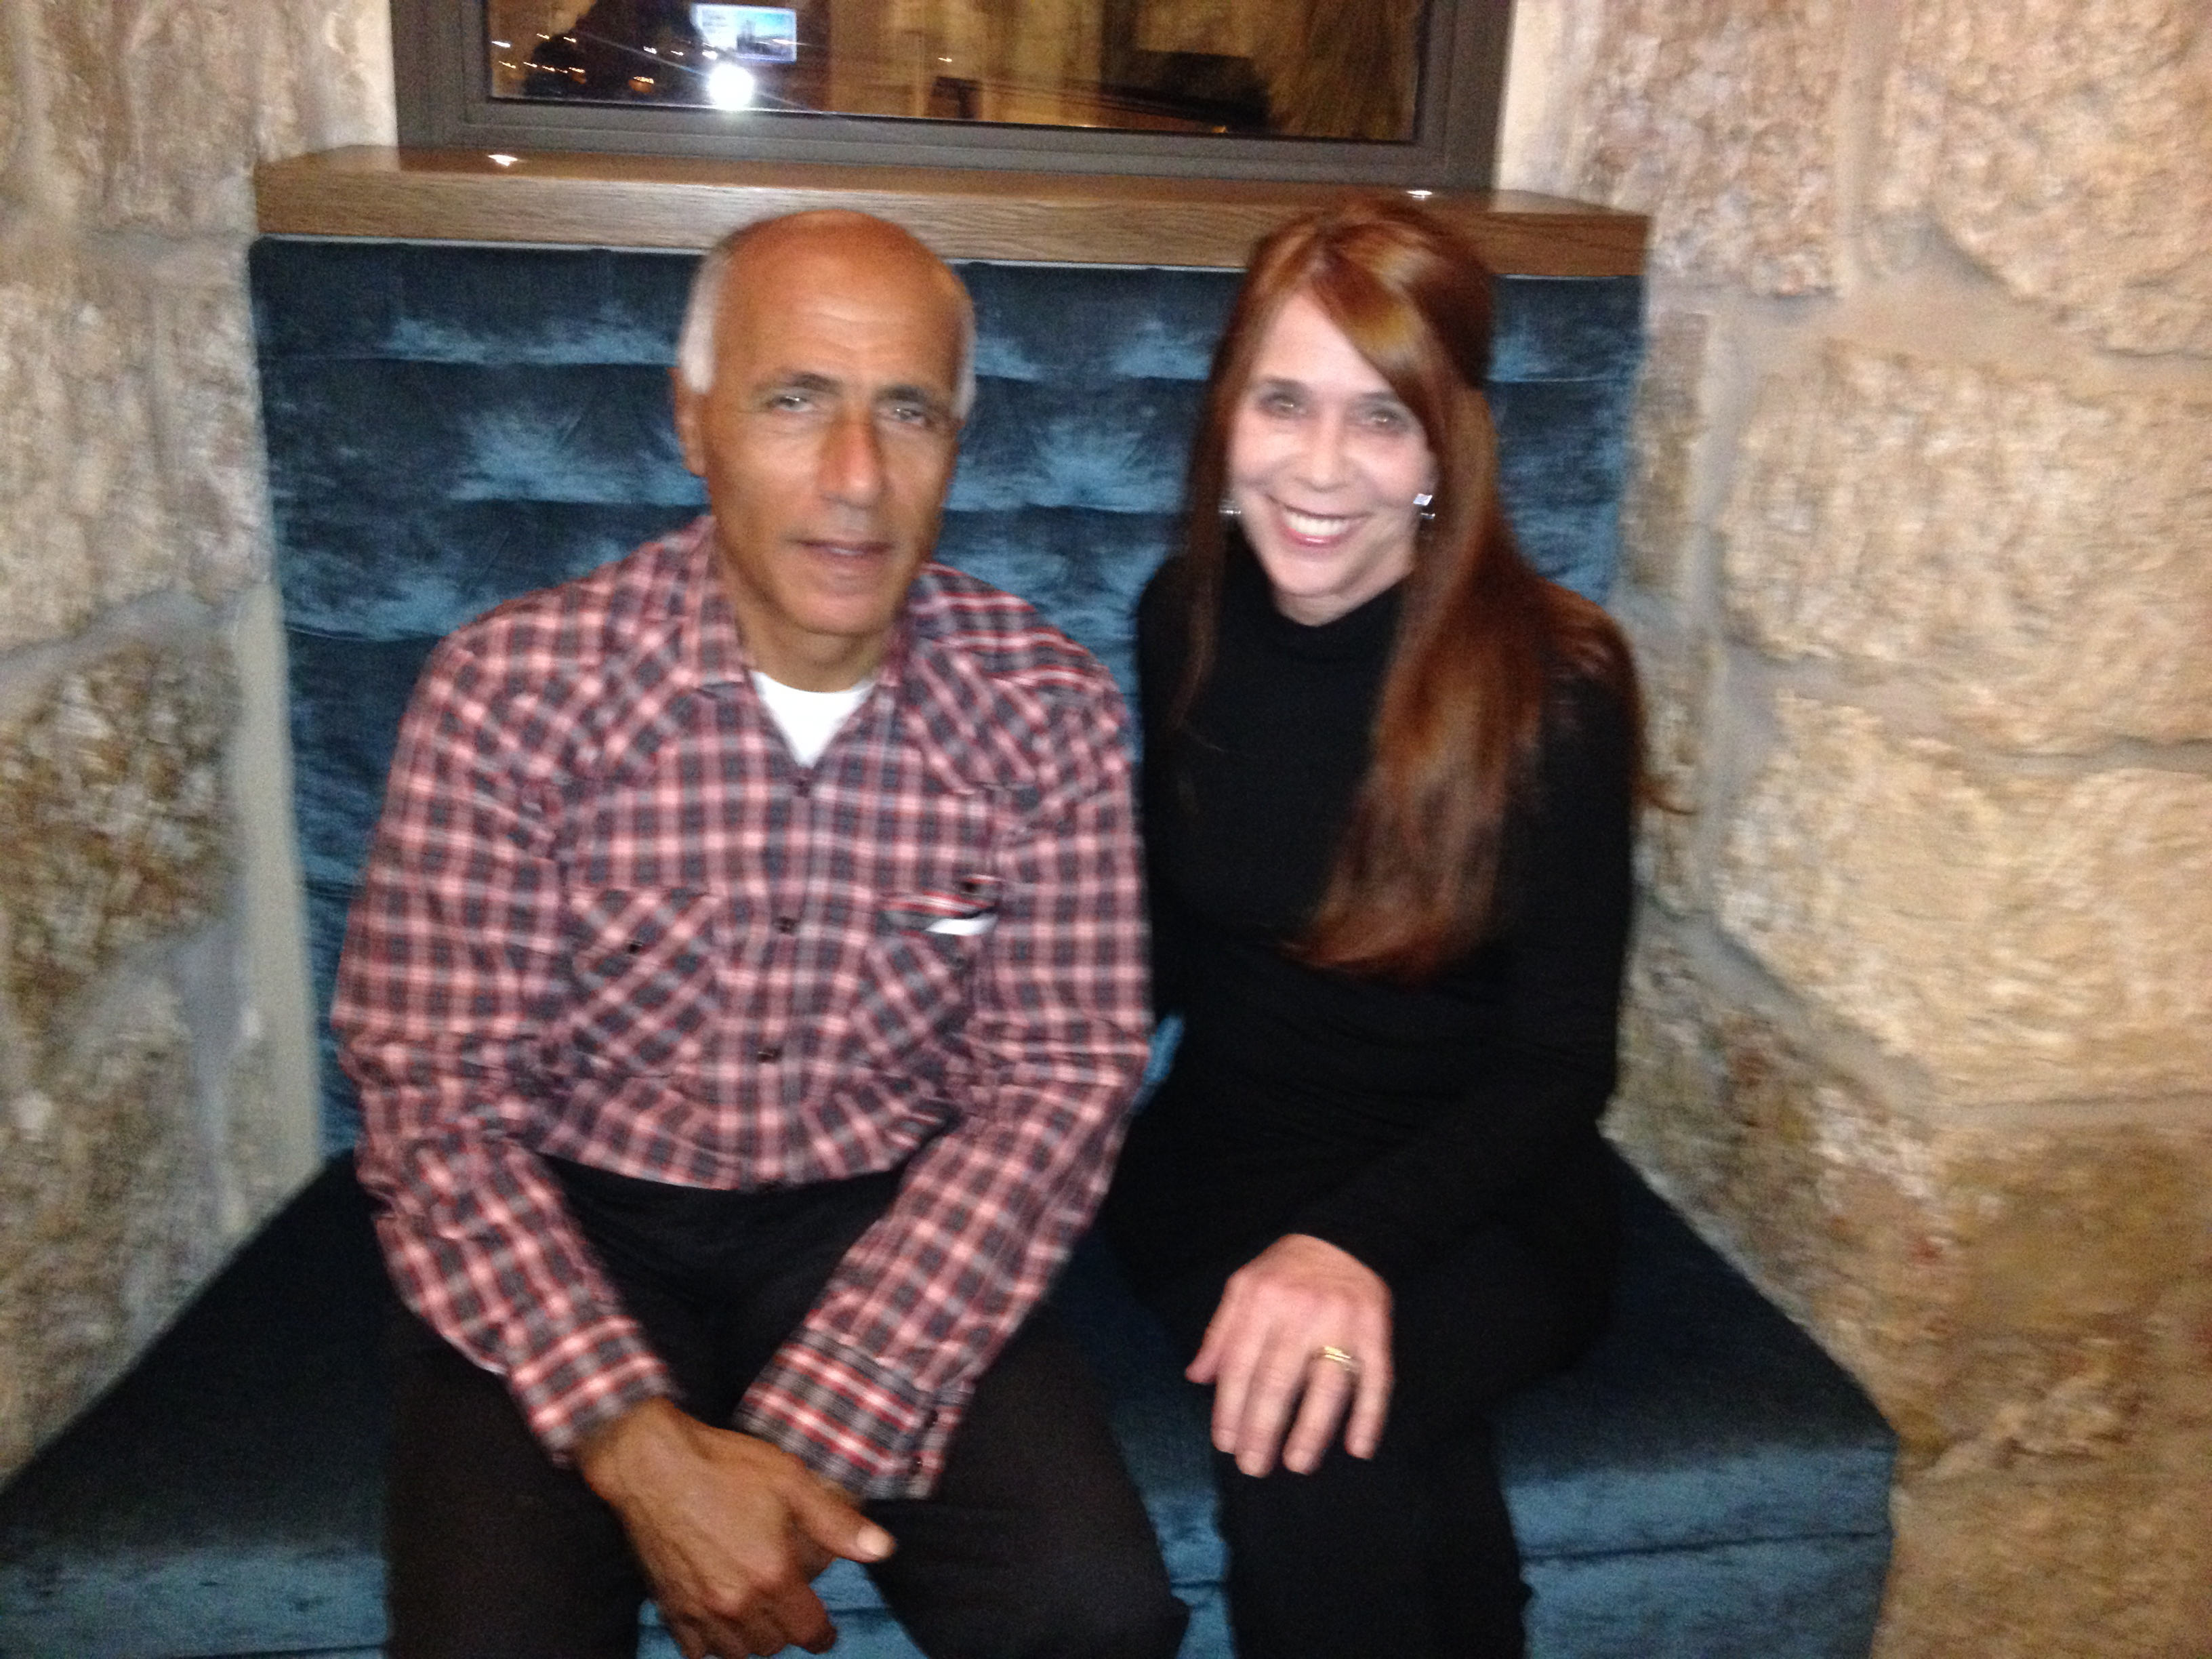 Eileen Fleming and Mordechai Vanunu, Israel's Nuclear Whistleblower, Nov. 2013, east Jerusalem